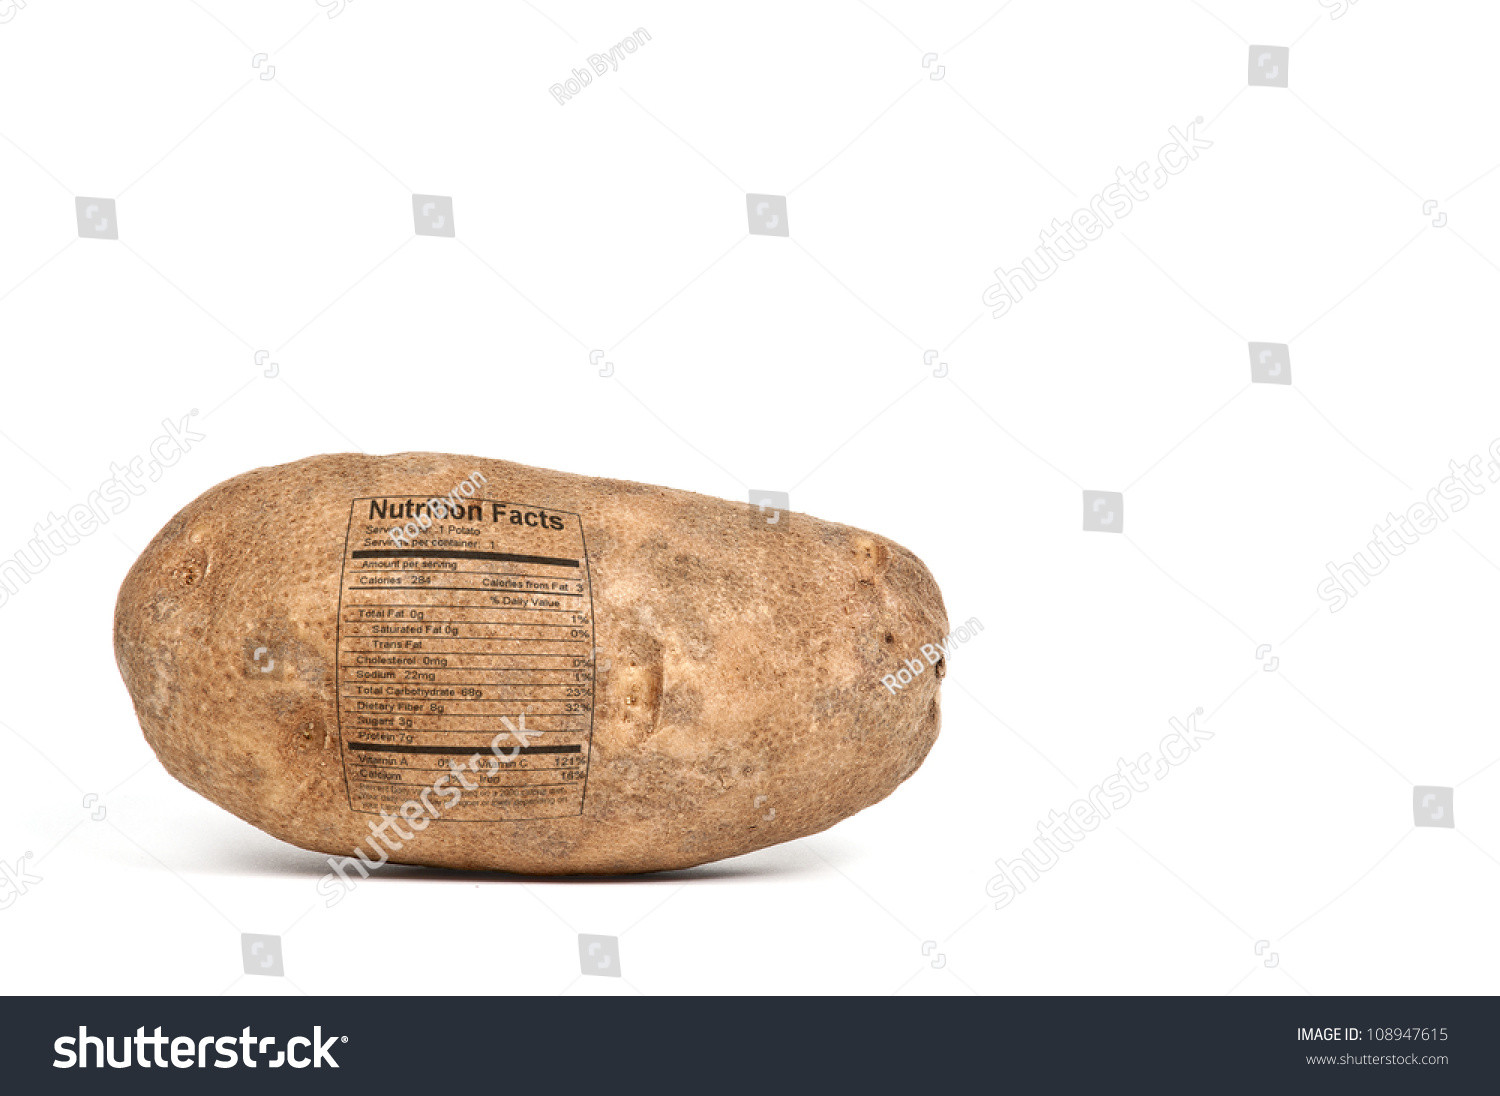 Calories In A Russet Potato  Delicious Russet Potato With A Nutrition Label Ready To Be